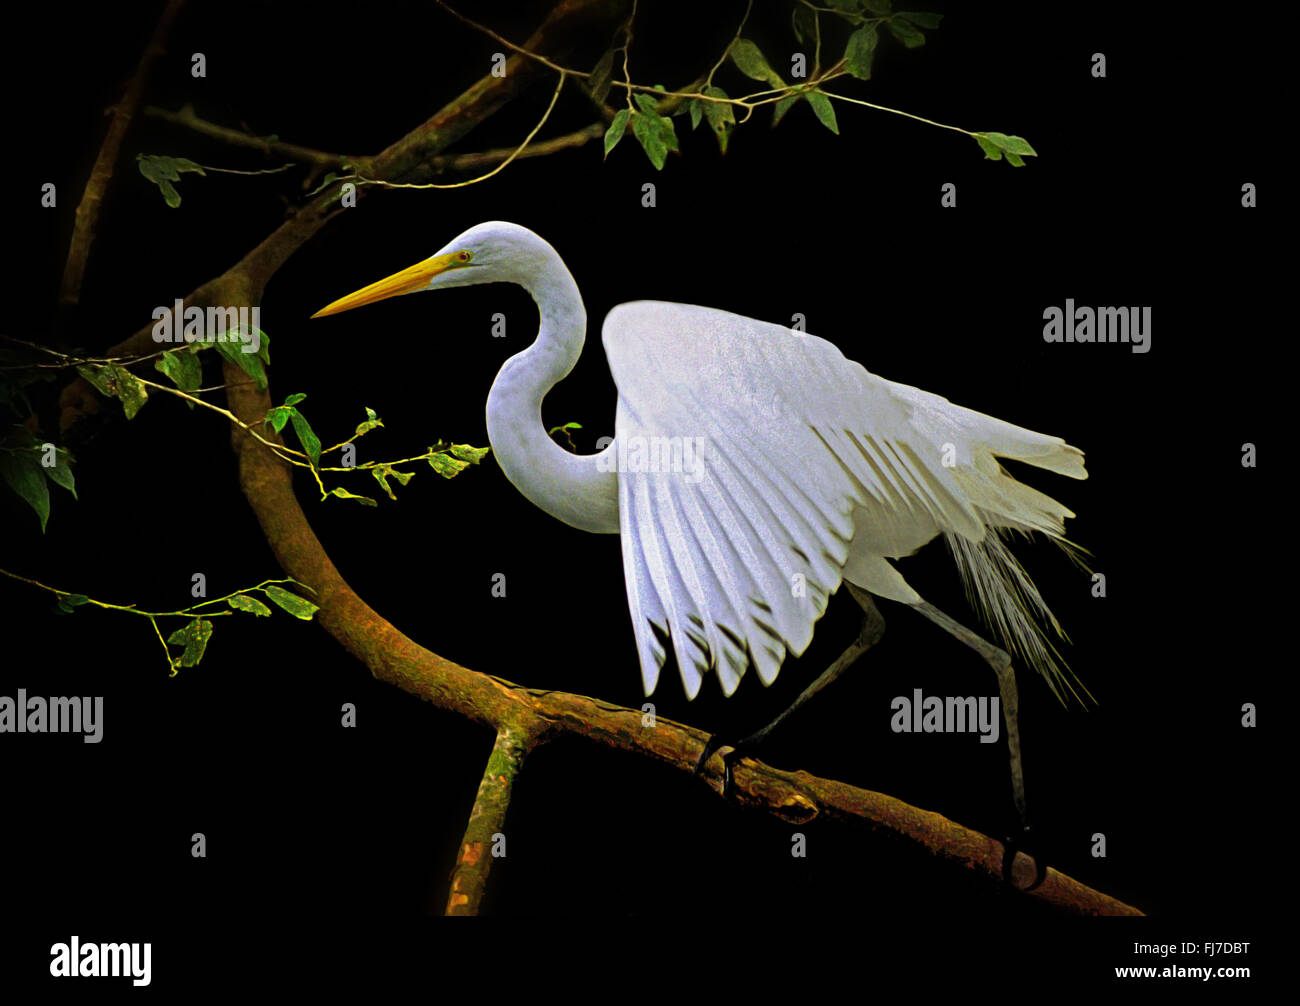 Great Egret perched in dramatic pose, Brazil South America - Stock Image